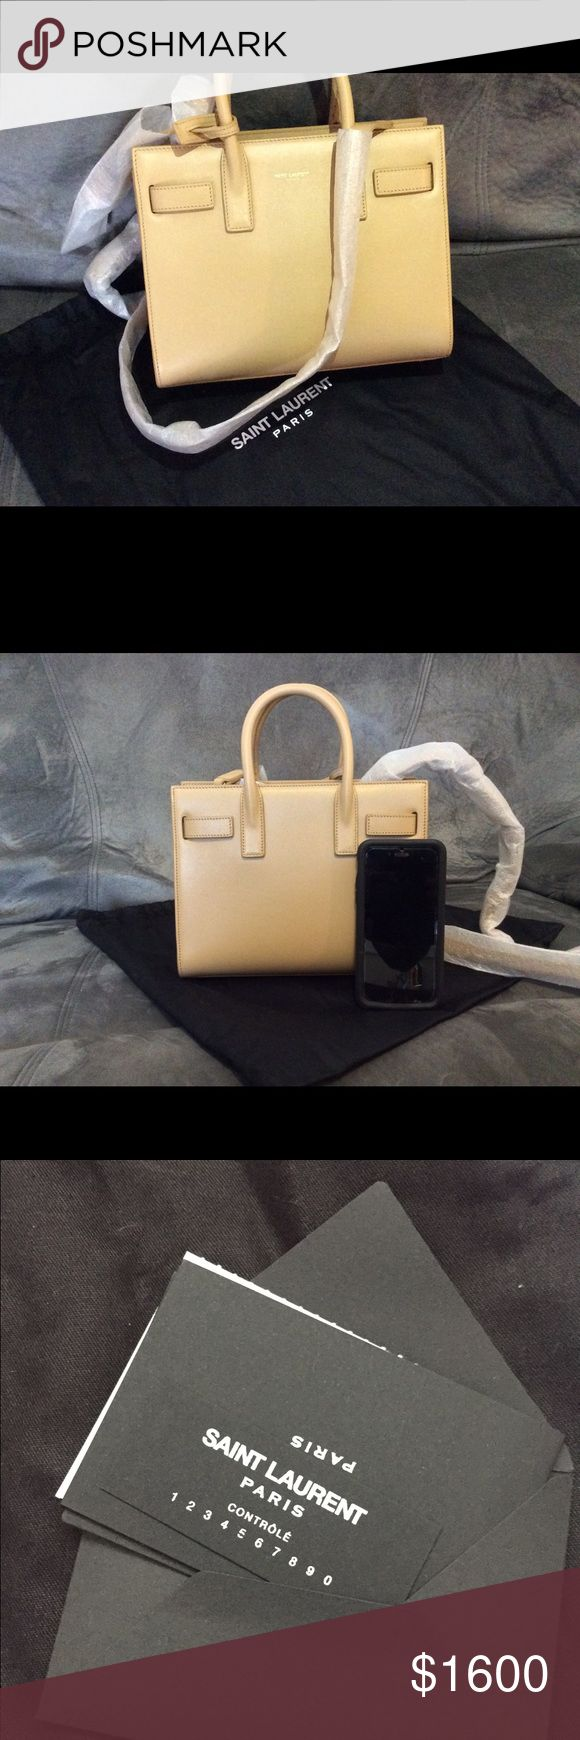 Saint Laurent Sac De Jour Nano Bag Brand new super cute and versatile bag! Dust bag, authenticity card and care booklet included. The bag is made of genuine leather! Yves Saint Laurent Bags Shoulder Bags